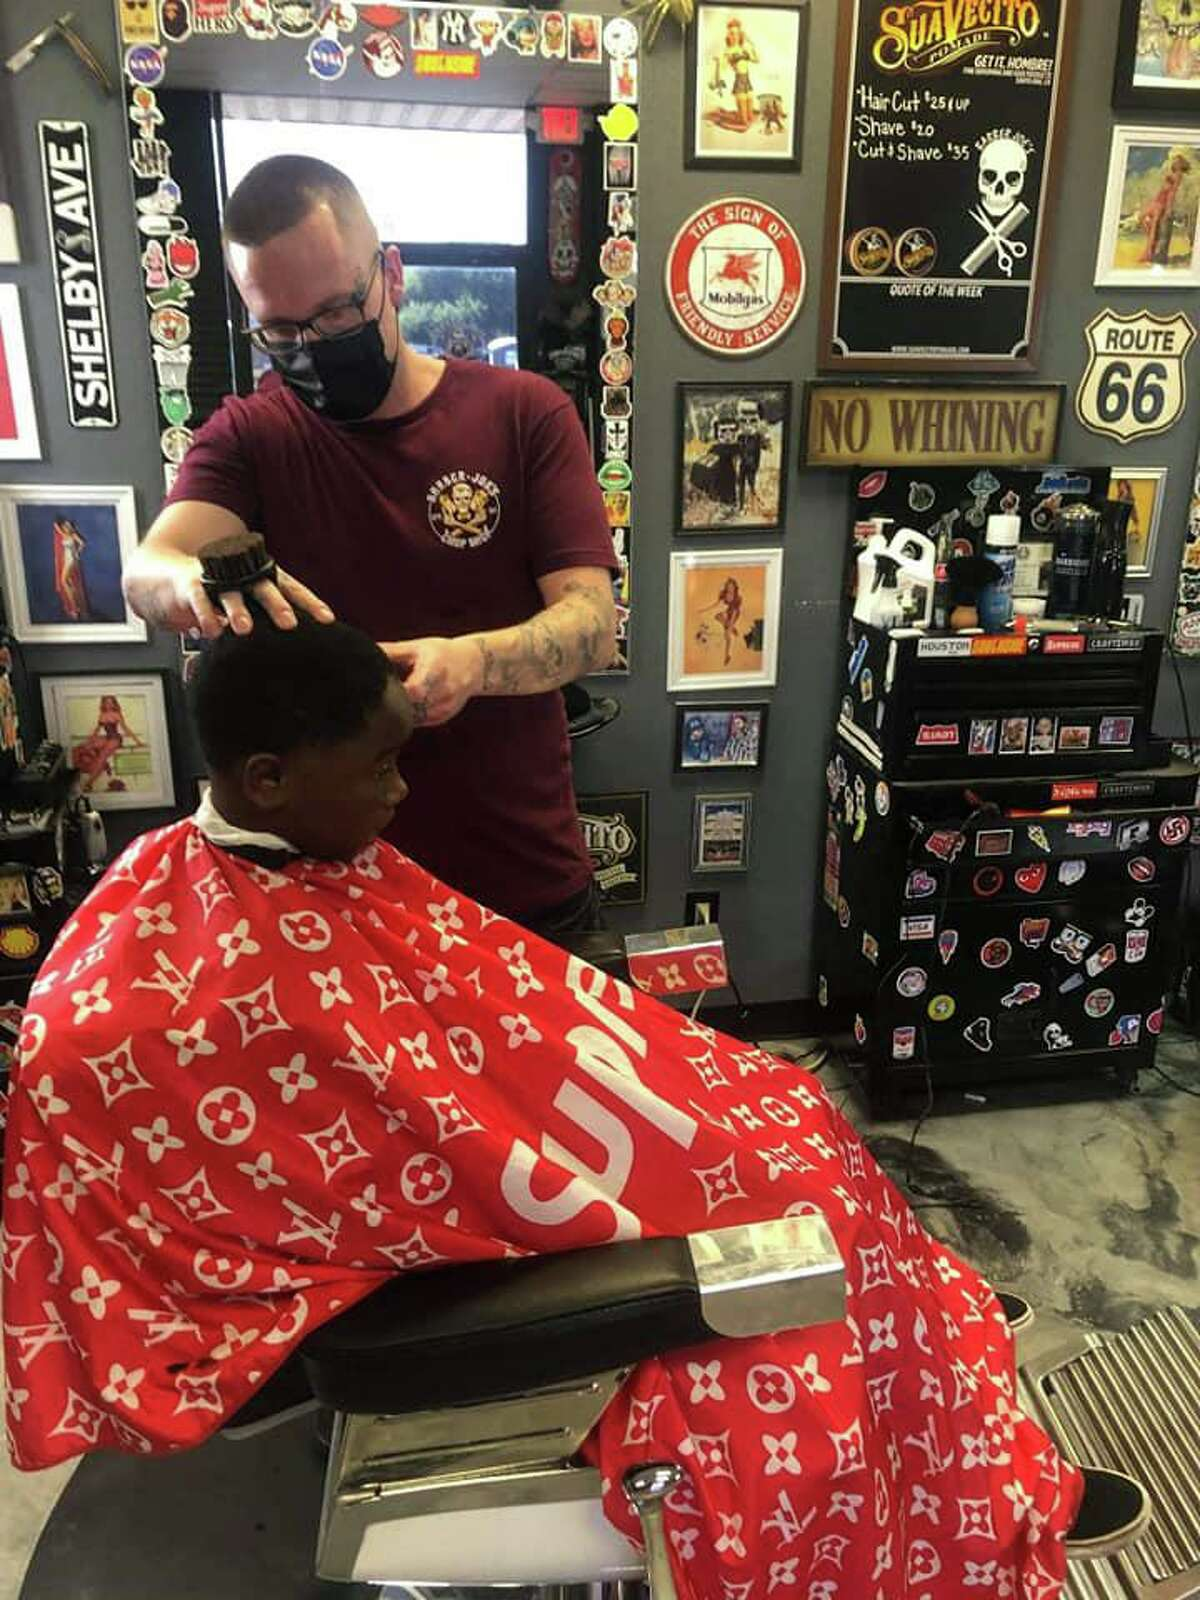 Using a voucher system, the business reached out to local churches and the school district to identify students in need. A good haircut goes a long way, said Olivia Kane, who owns the salon and spa adjacent to Barber Joe's.